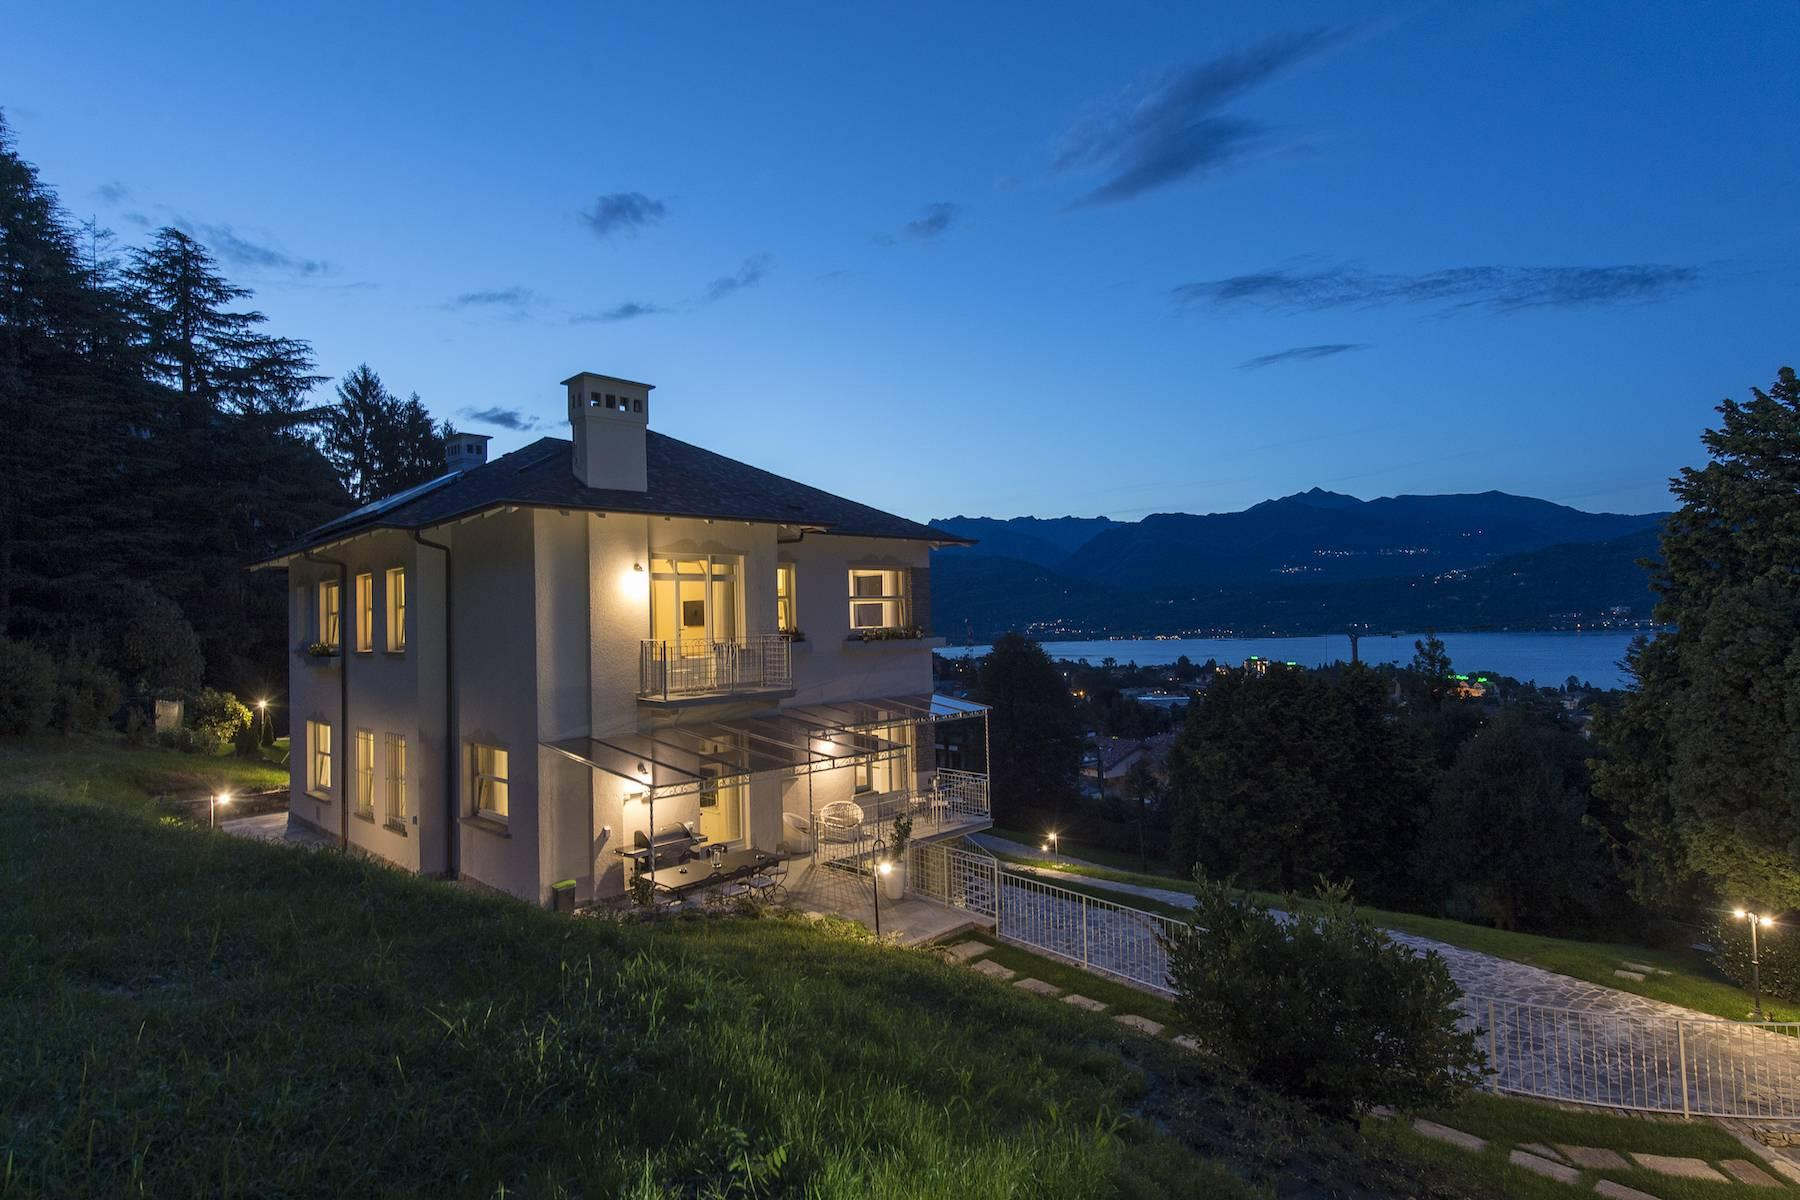 Enchanting Villa with breathtaking view on Lake Maggiore - 27